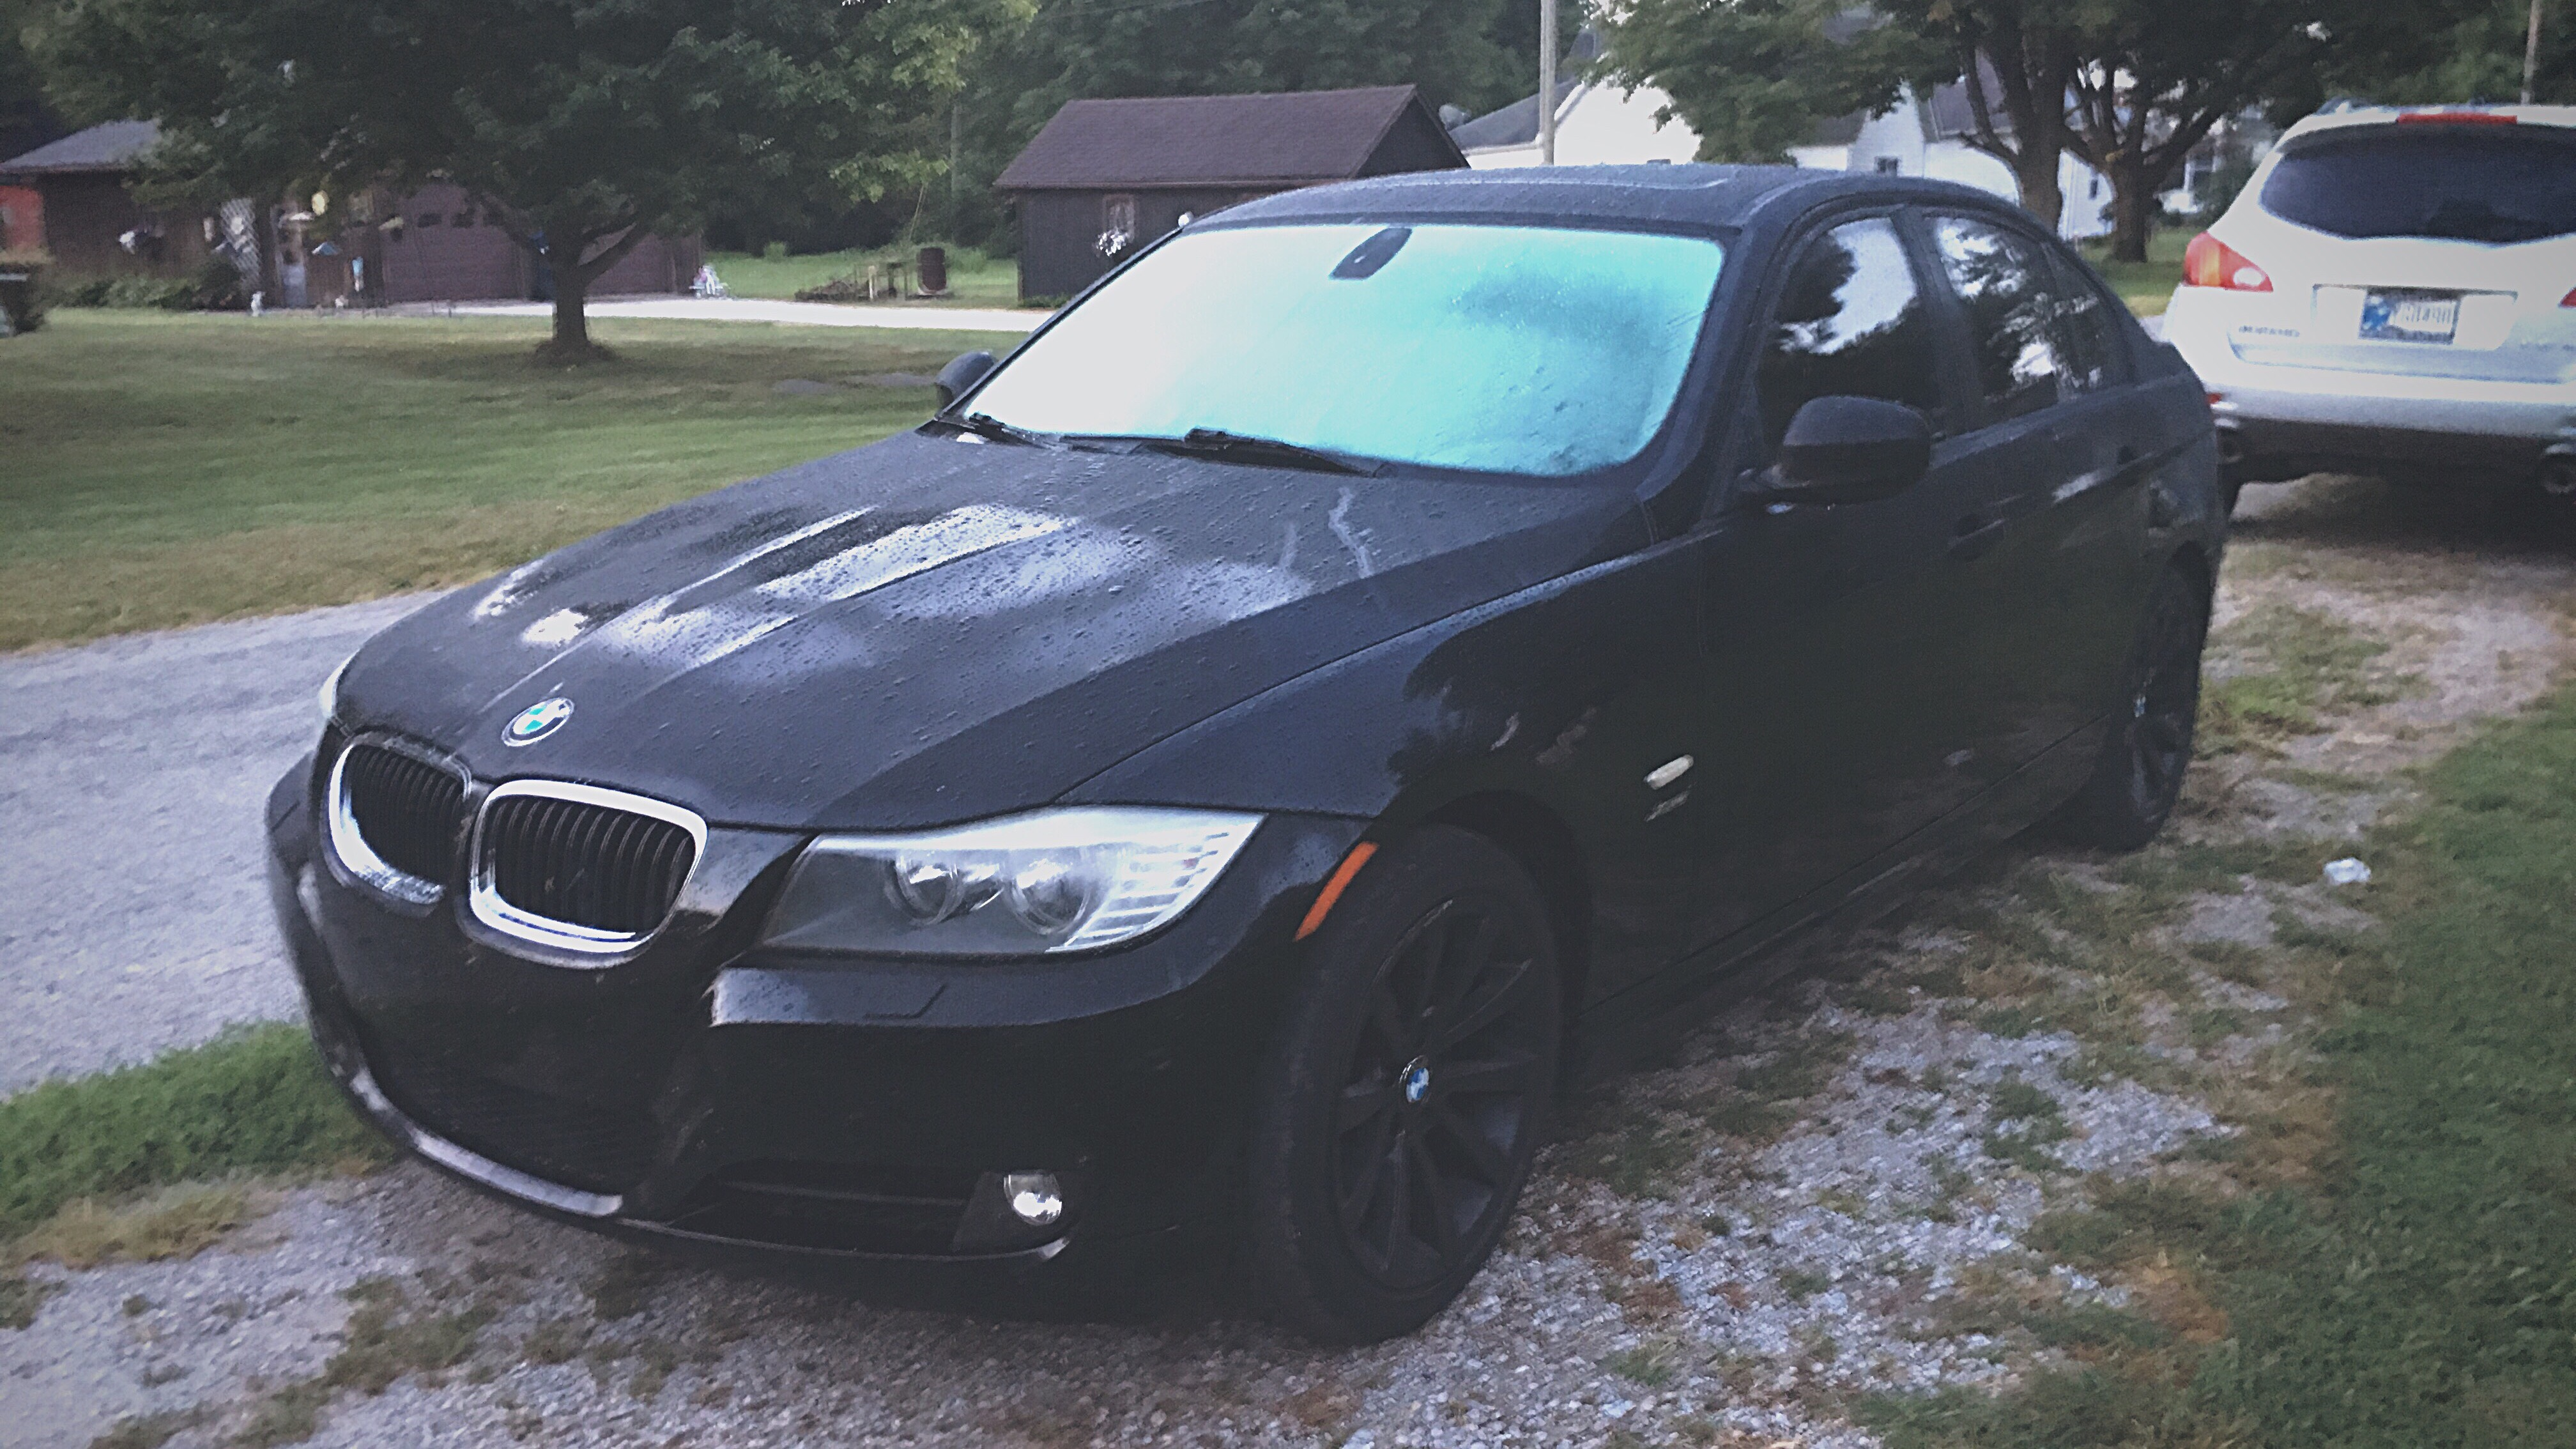 You guys know of any good performance mods for the 2011 E90